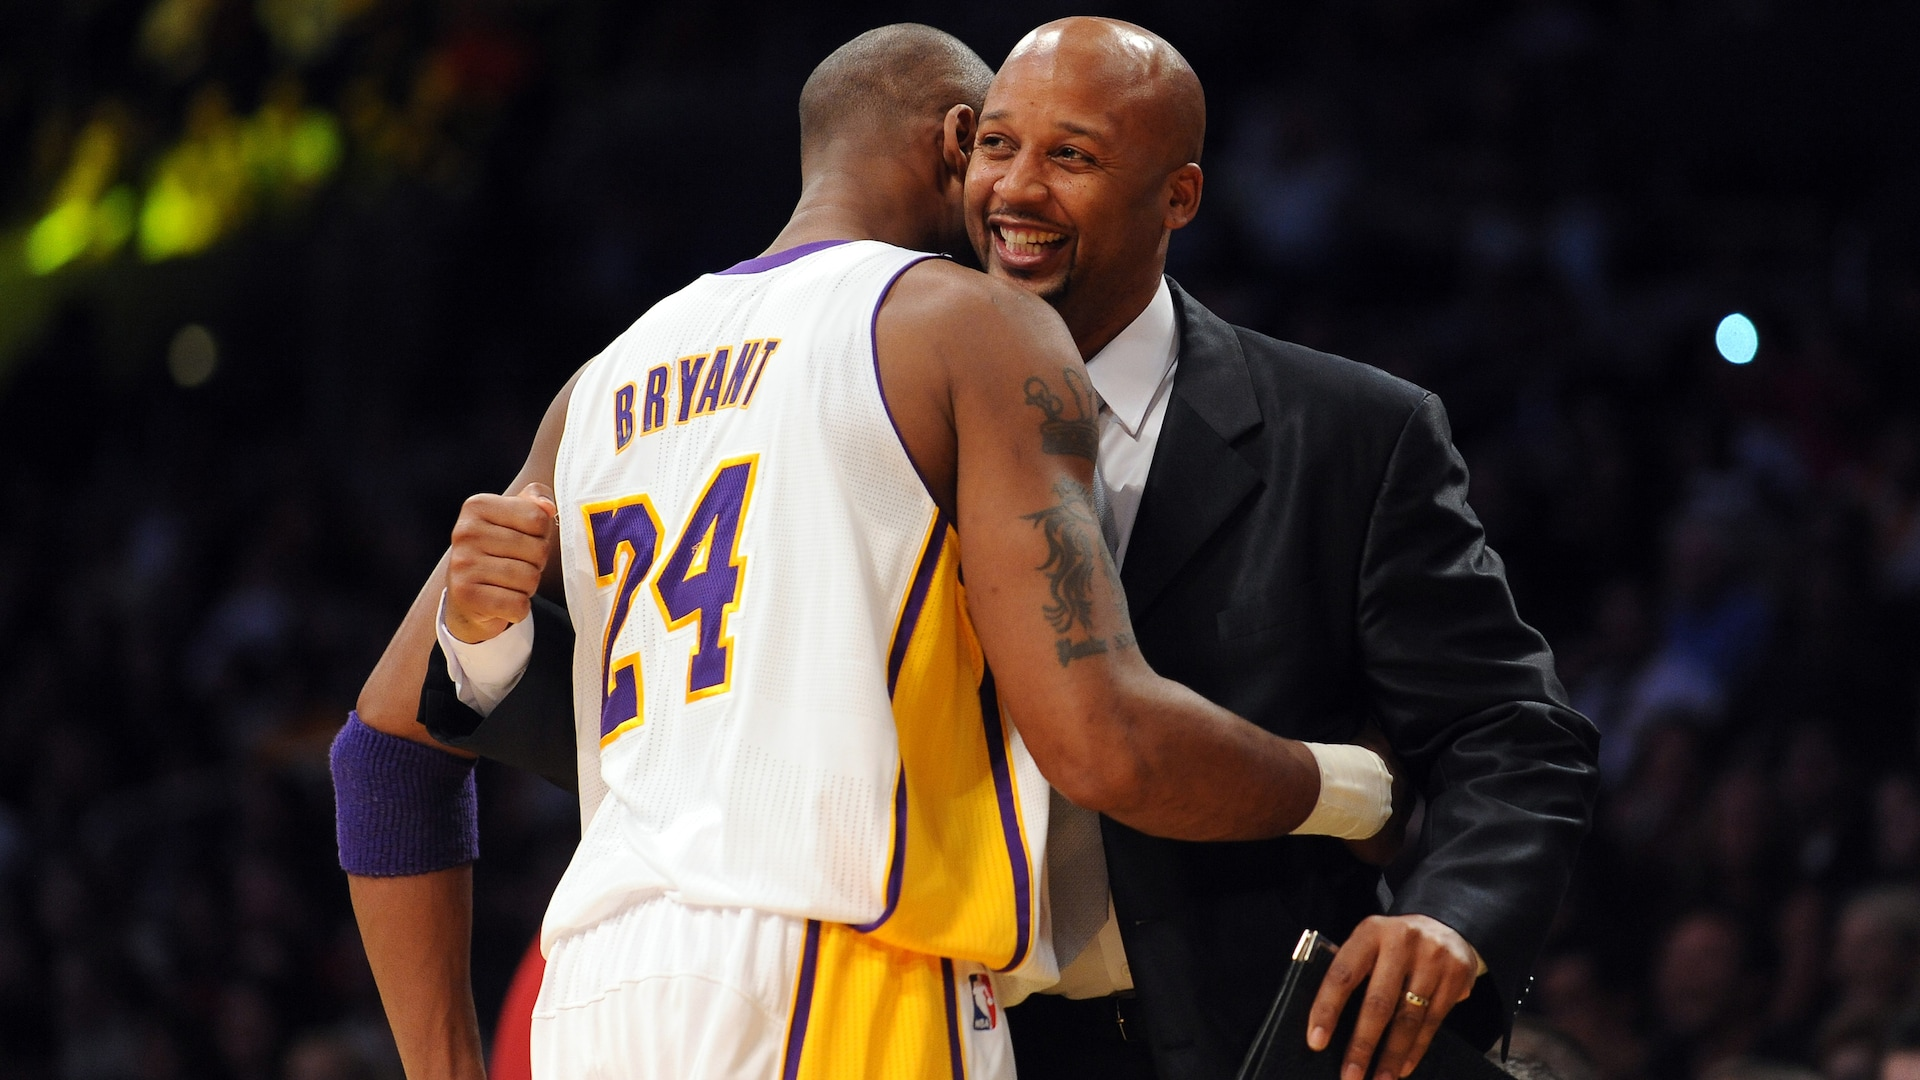 Brian Shaw Reacts to Report of Kobe Passing Away | NBA.com